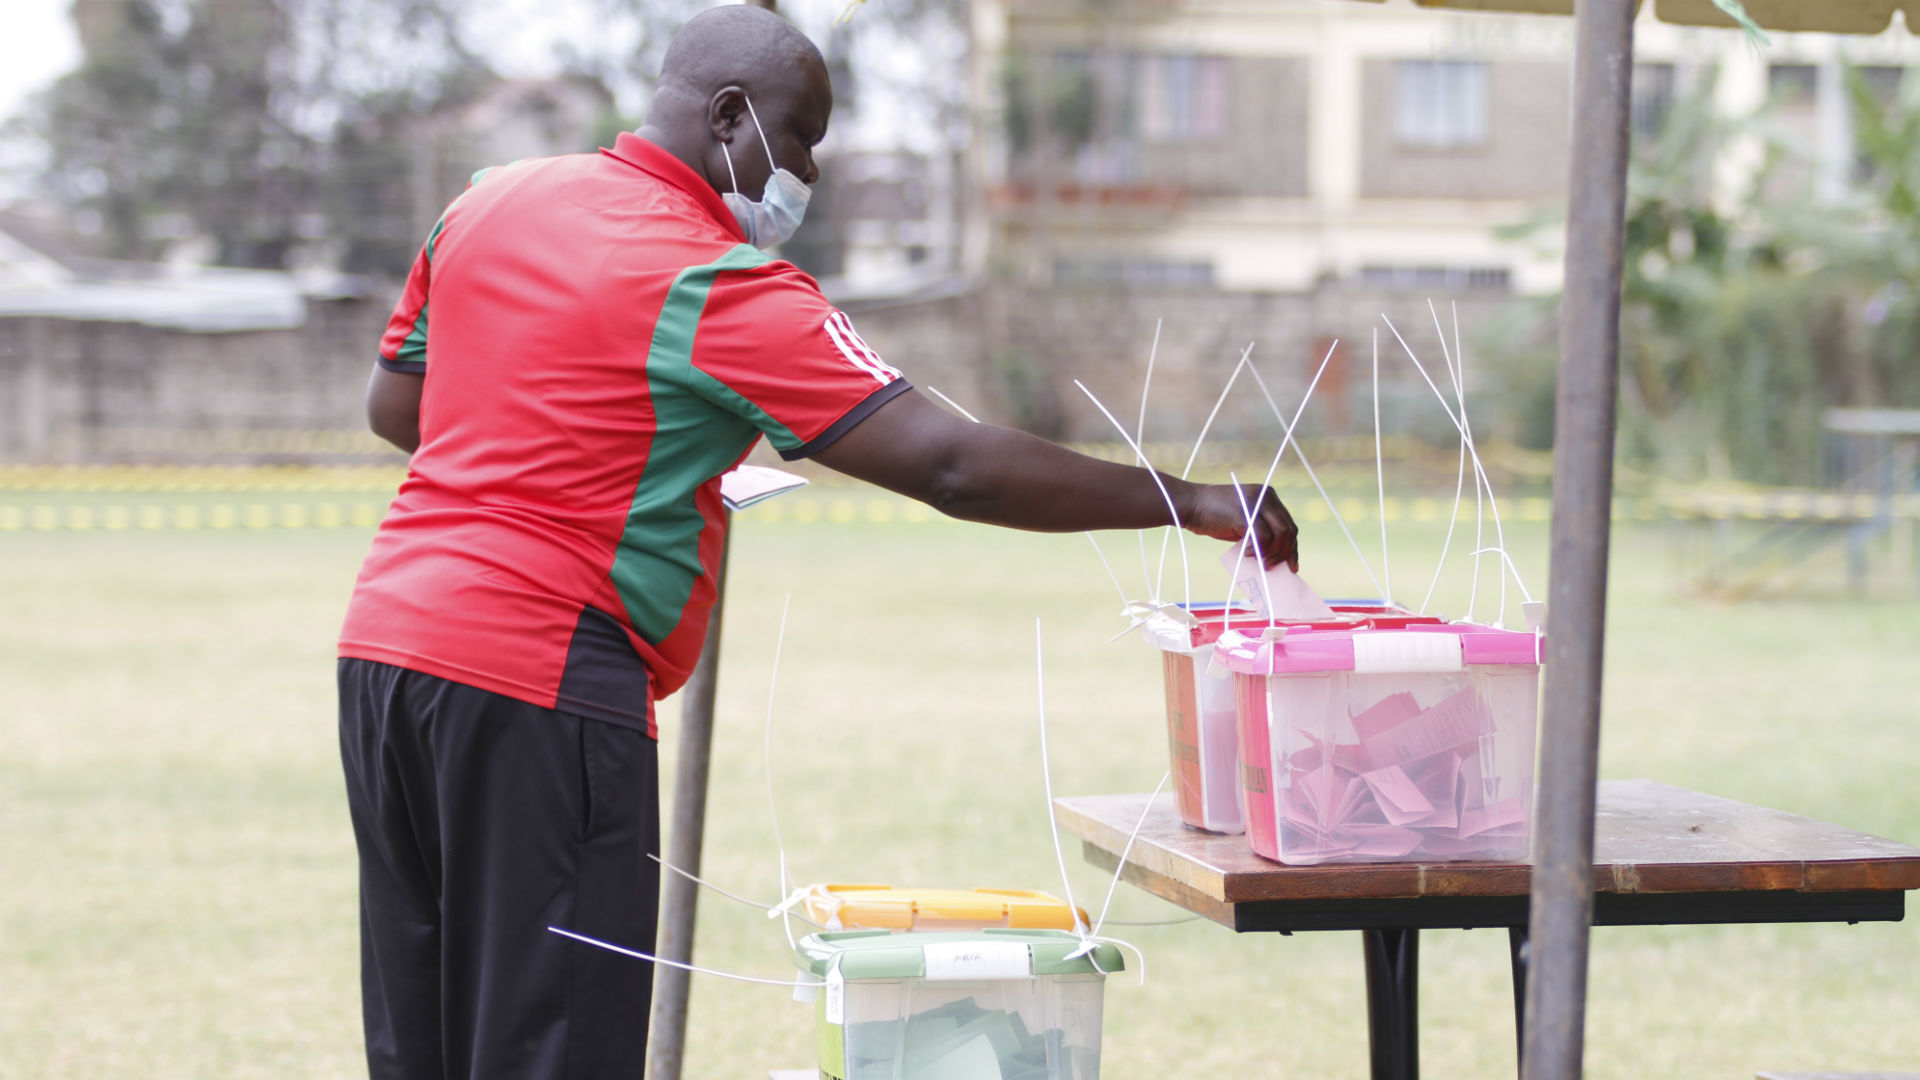 FKF Elections: Government warns FKF not to proceed with exercise